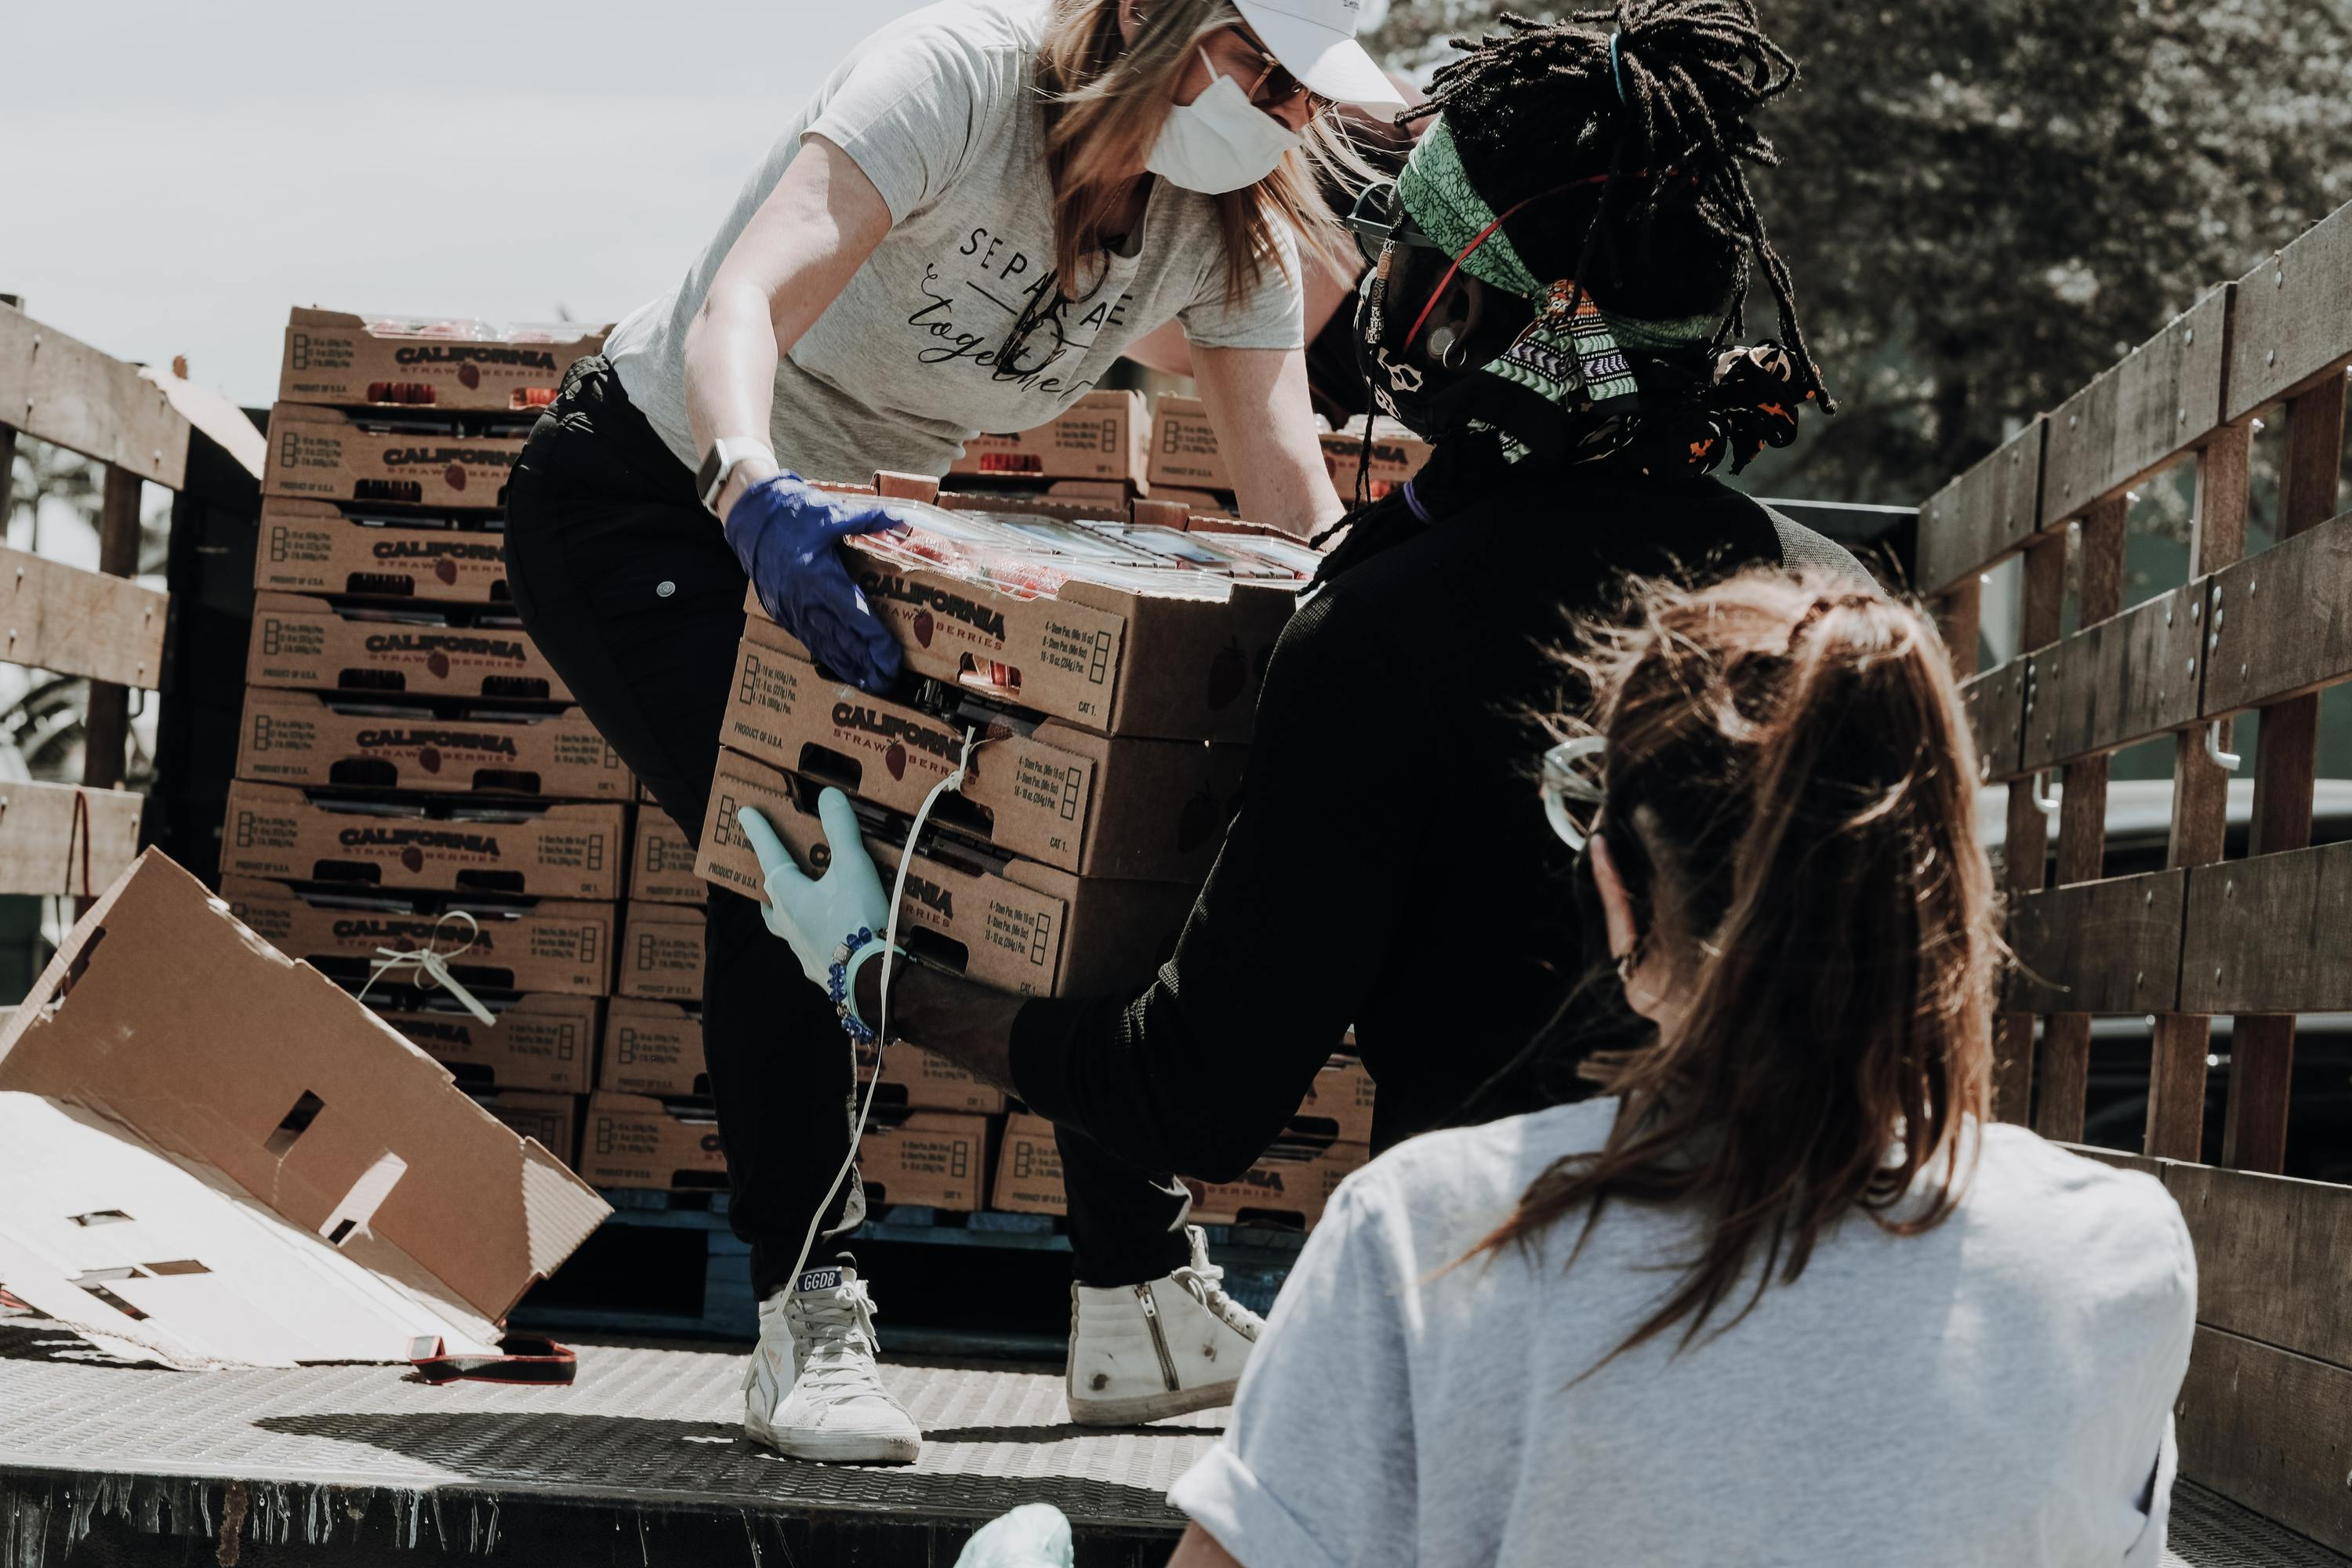 People unload crates from truck